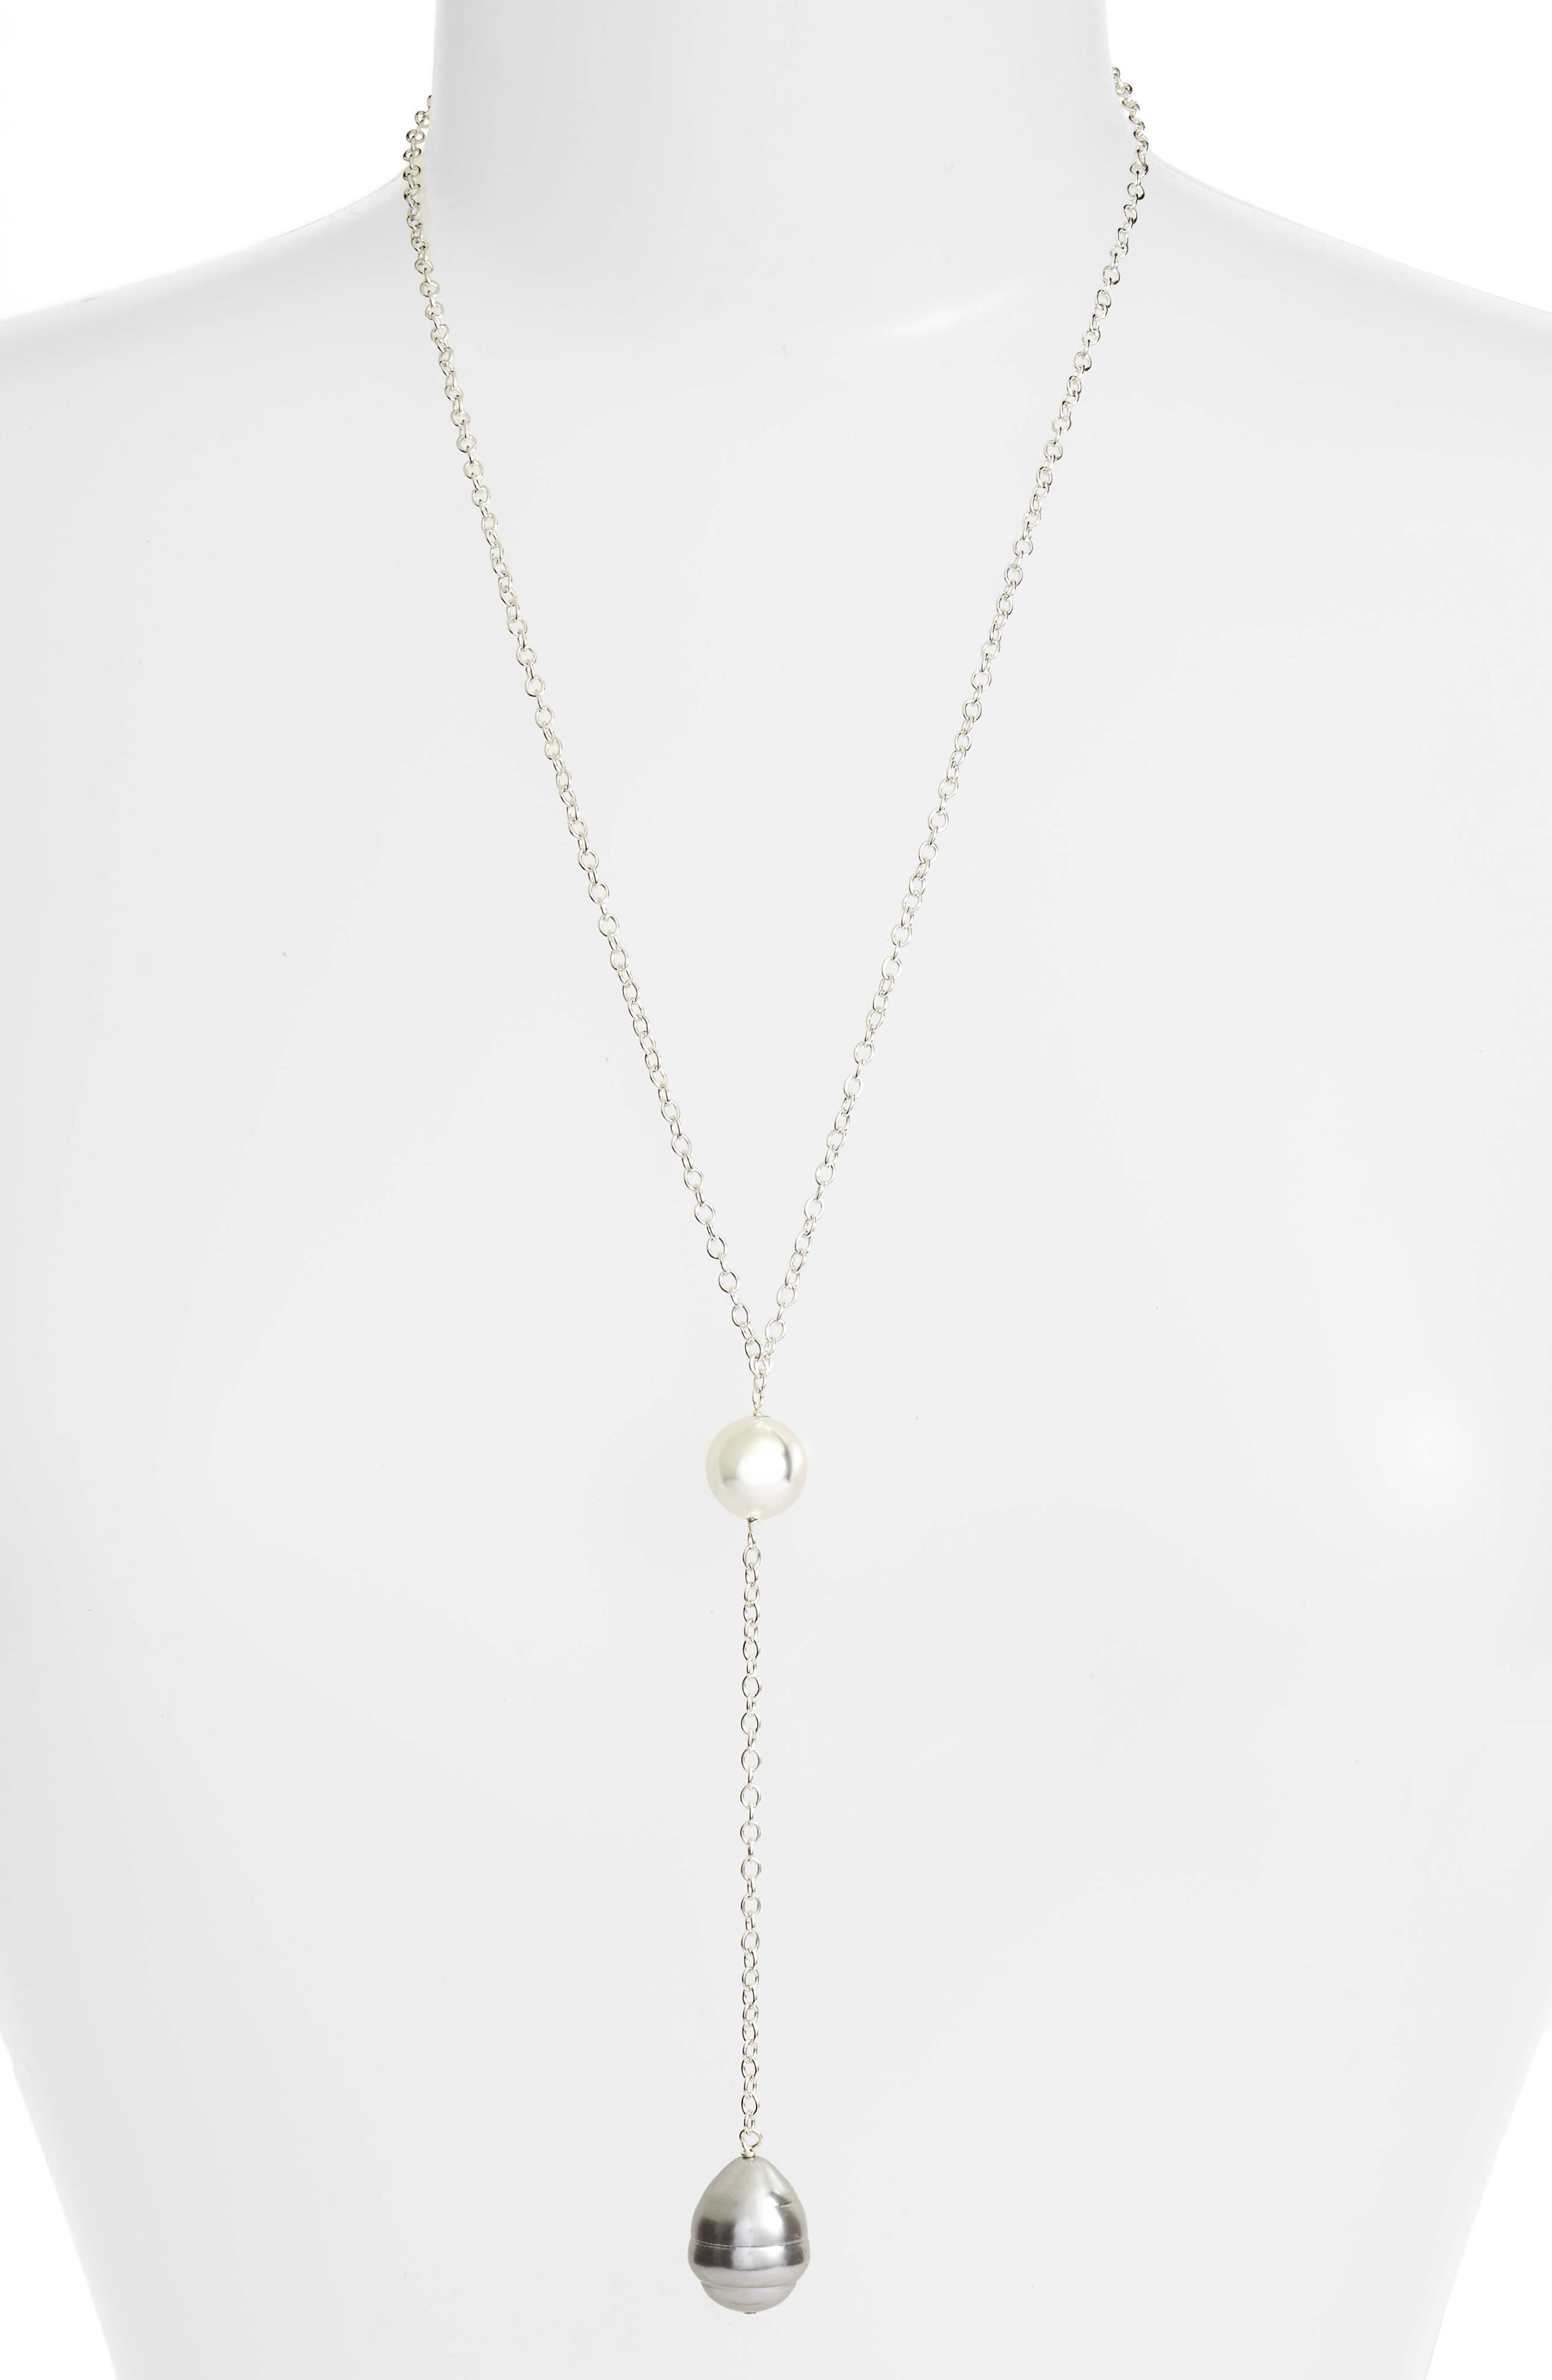 Shell Pendant Long Chain Y-Necklace,                         Main,                         color, Silver